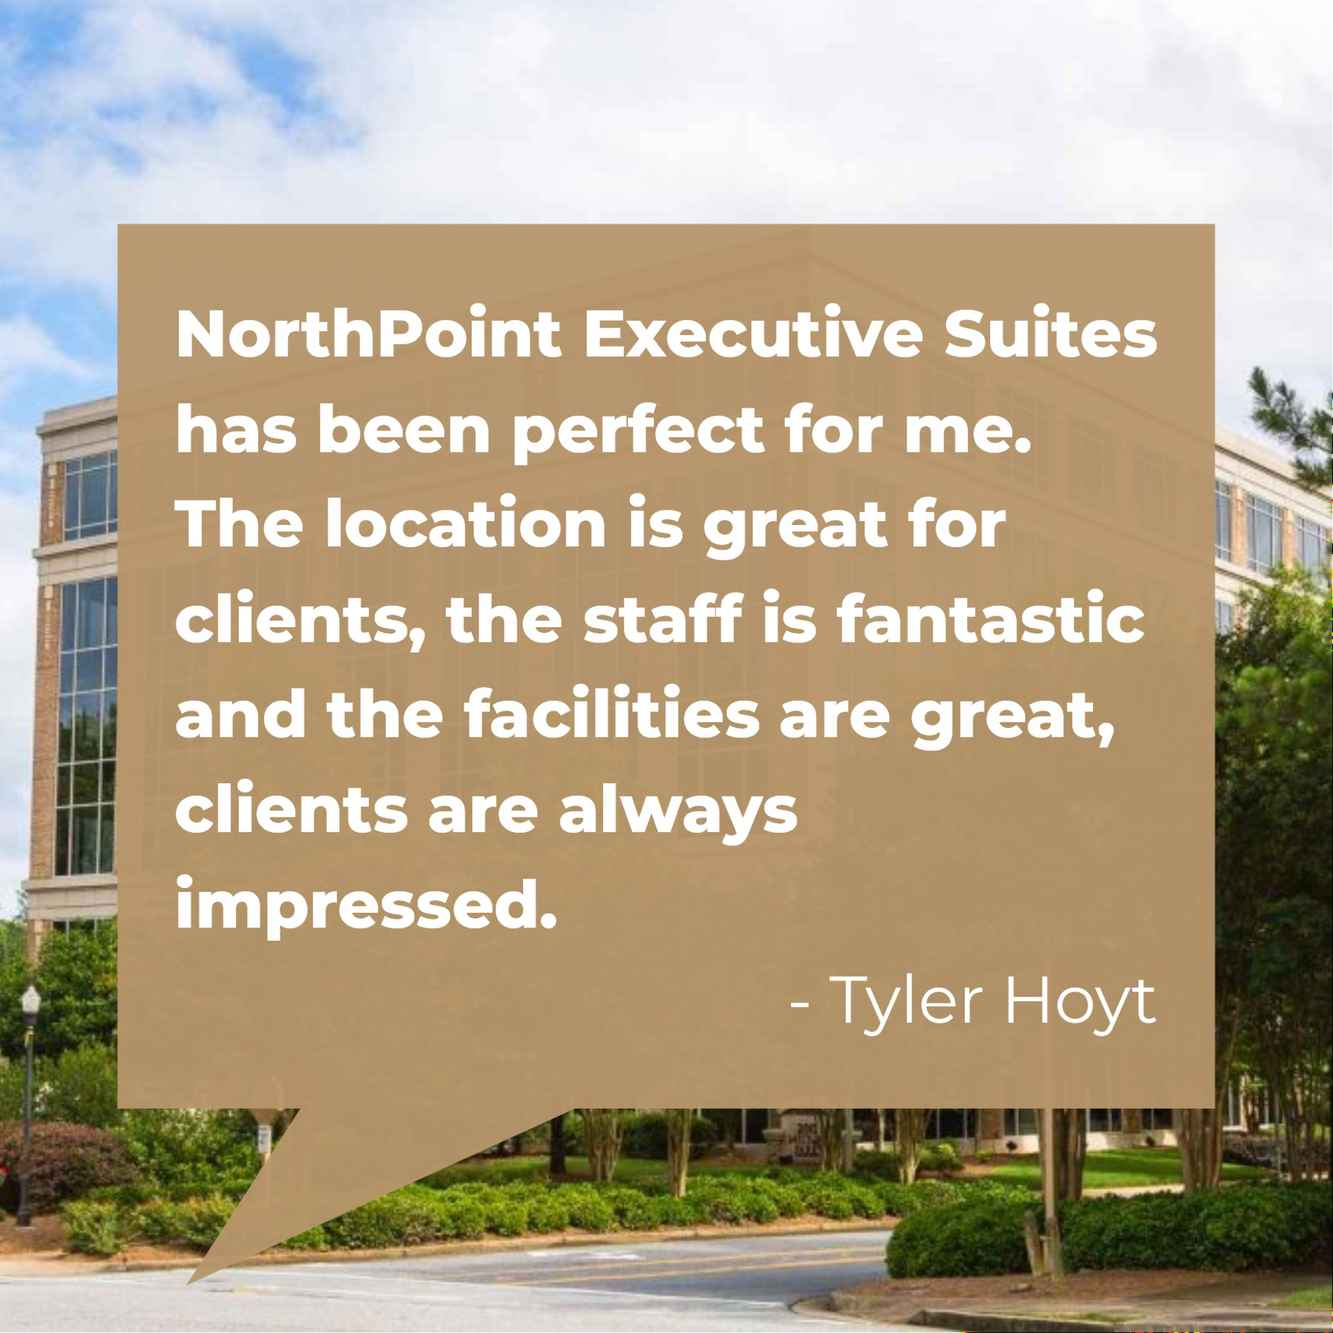 NorthPoint Executive Suites has been the perfect solution for Tyler Hoyt.